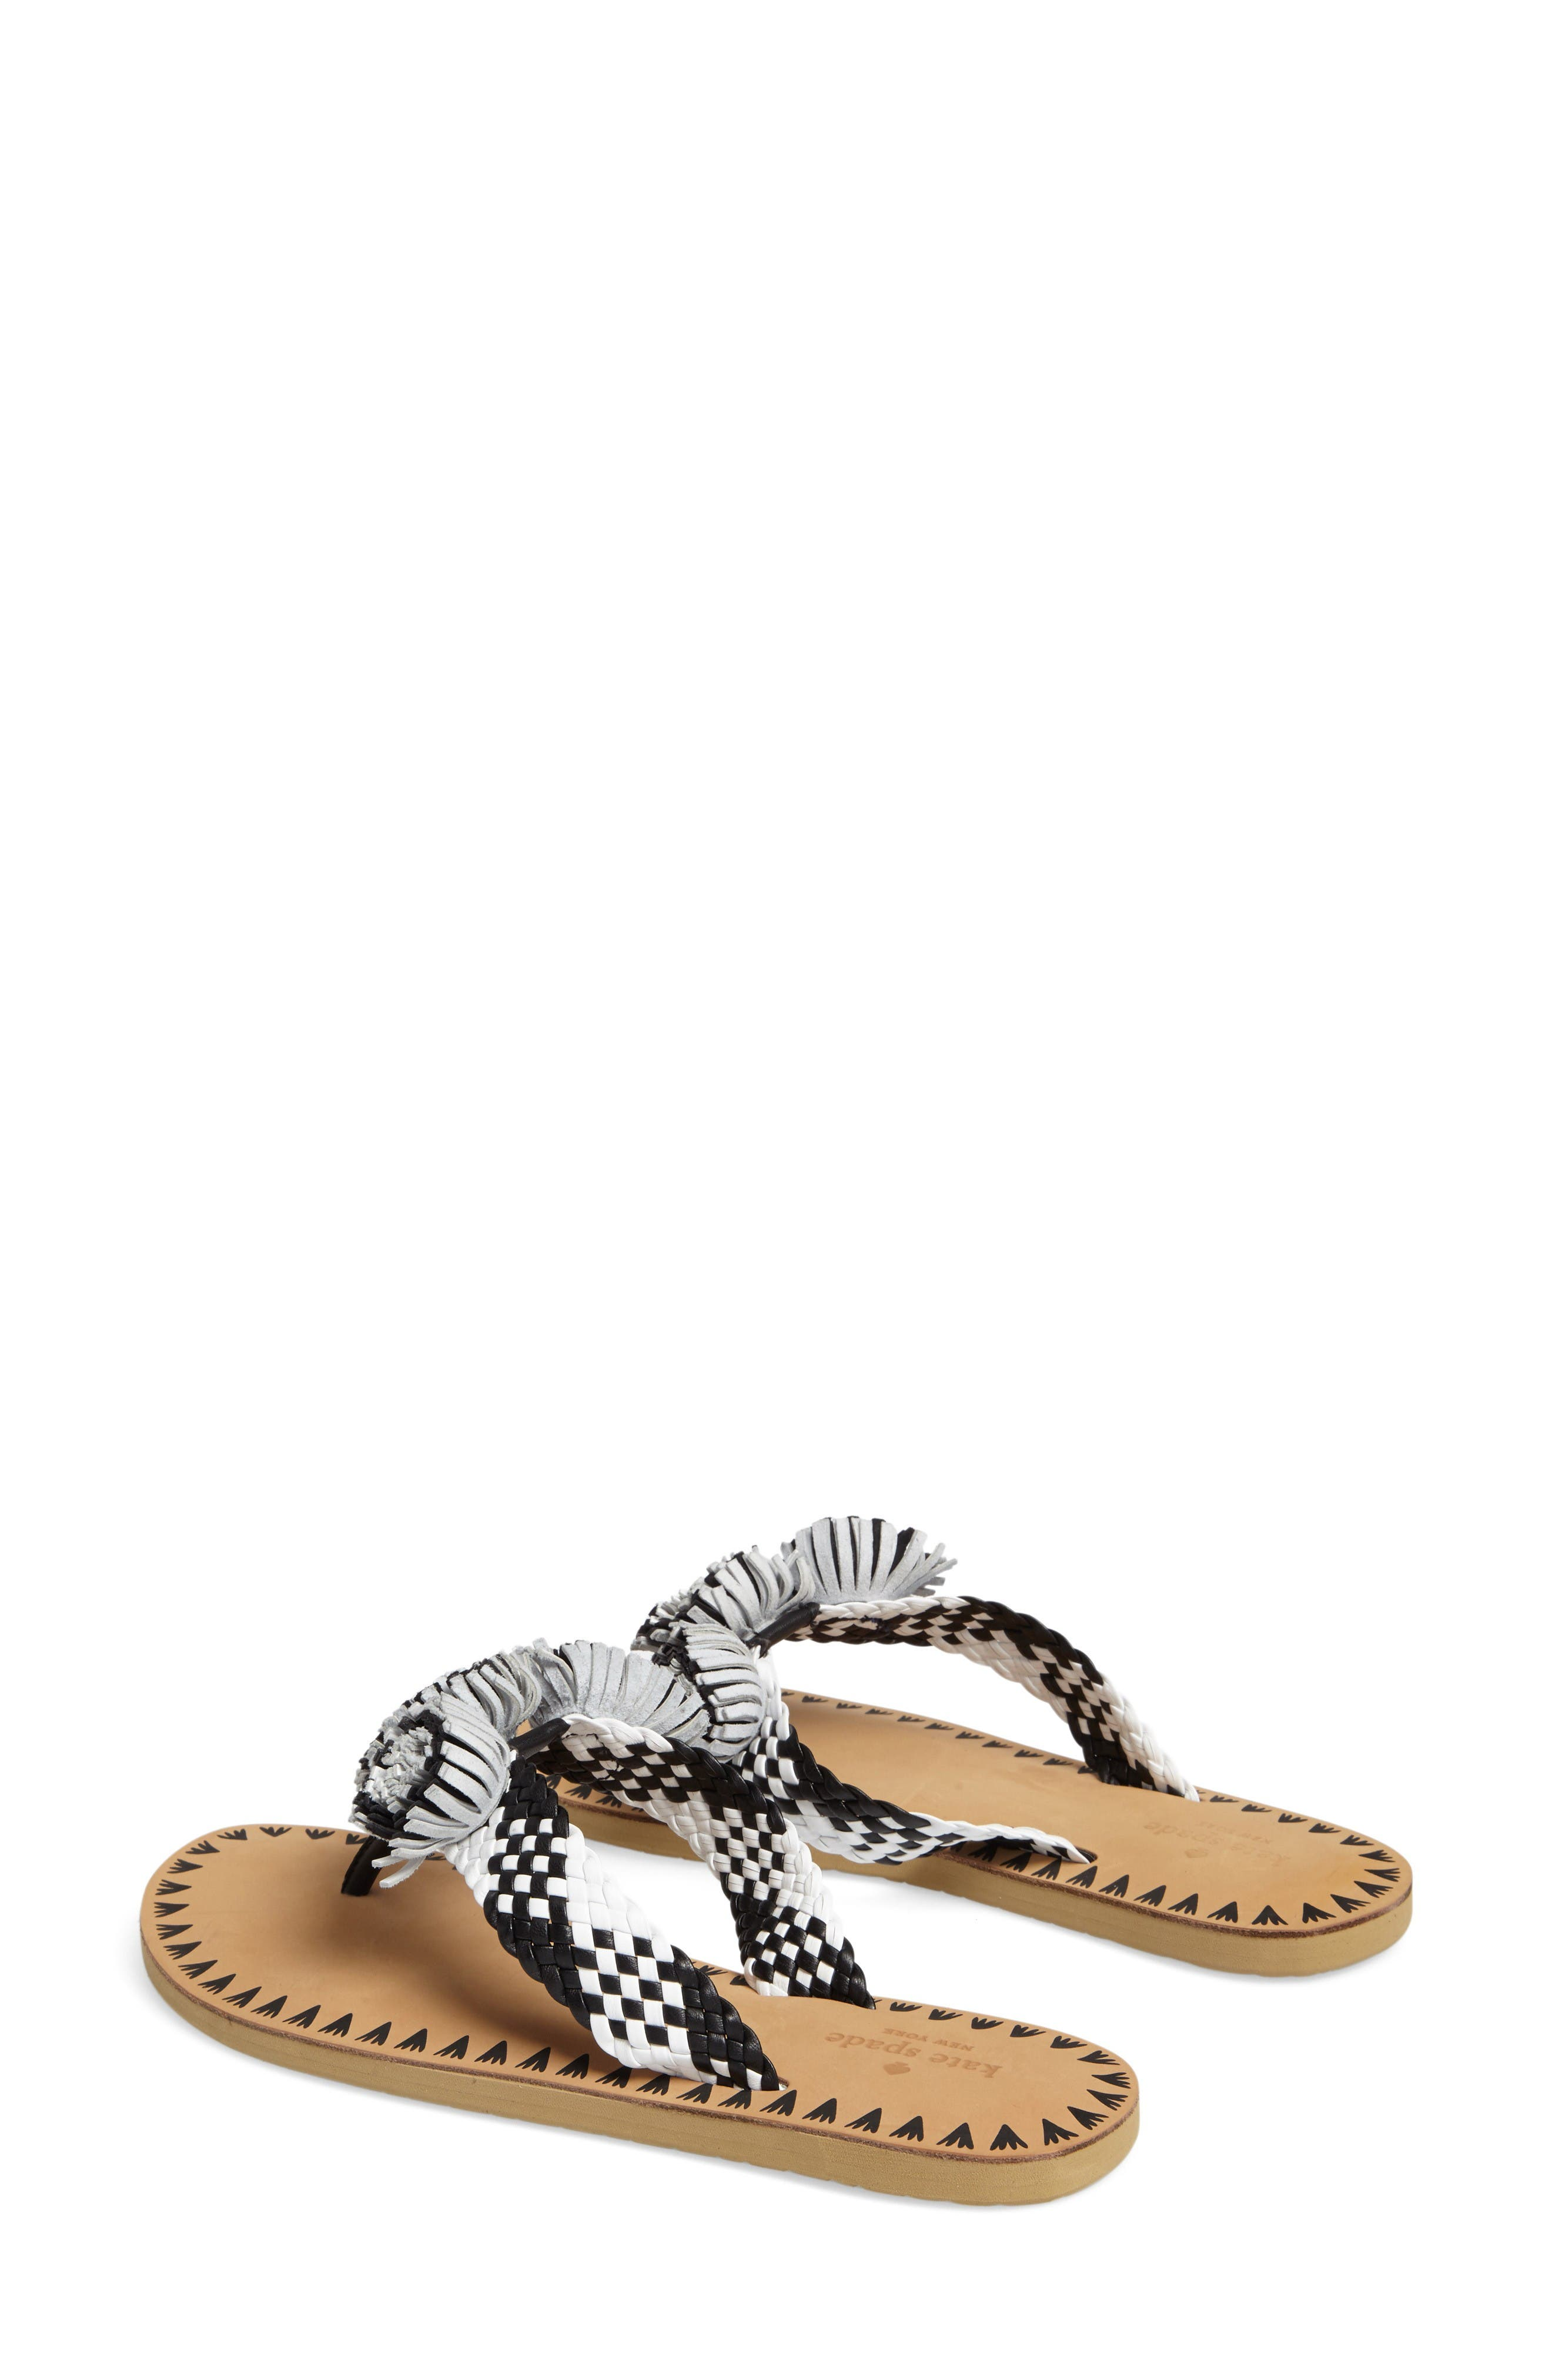 Alternate Image 3  - kate spade new york idette fringe flip flop (Women)